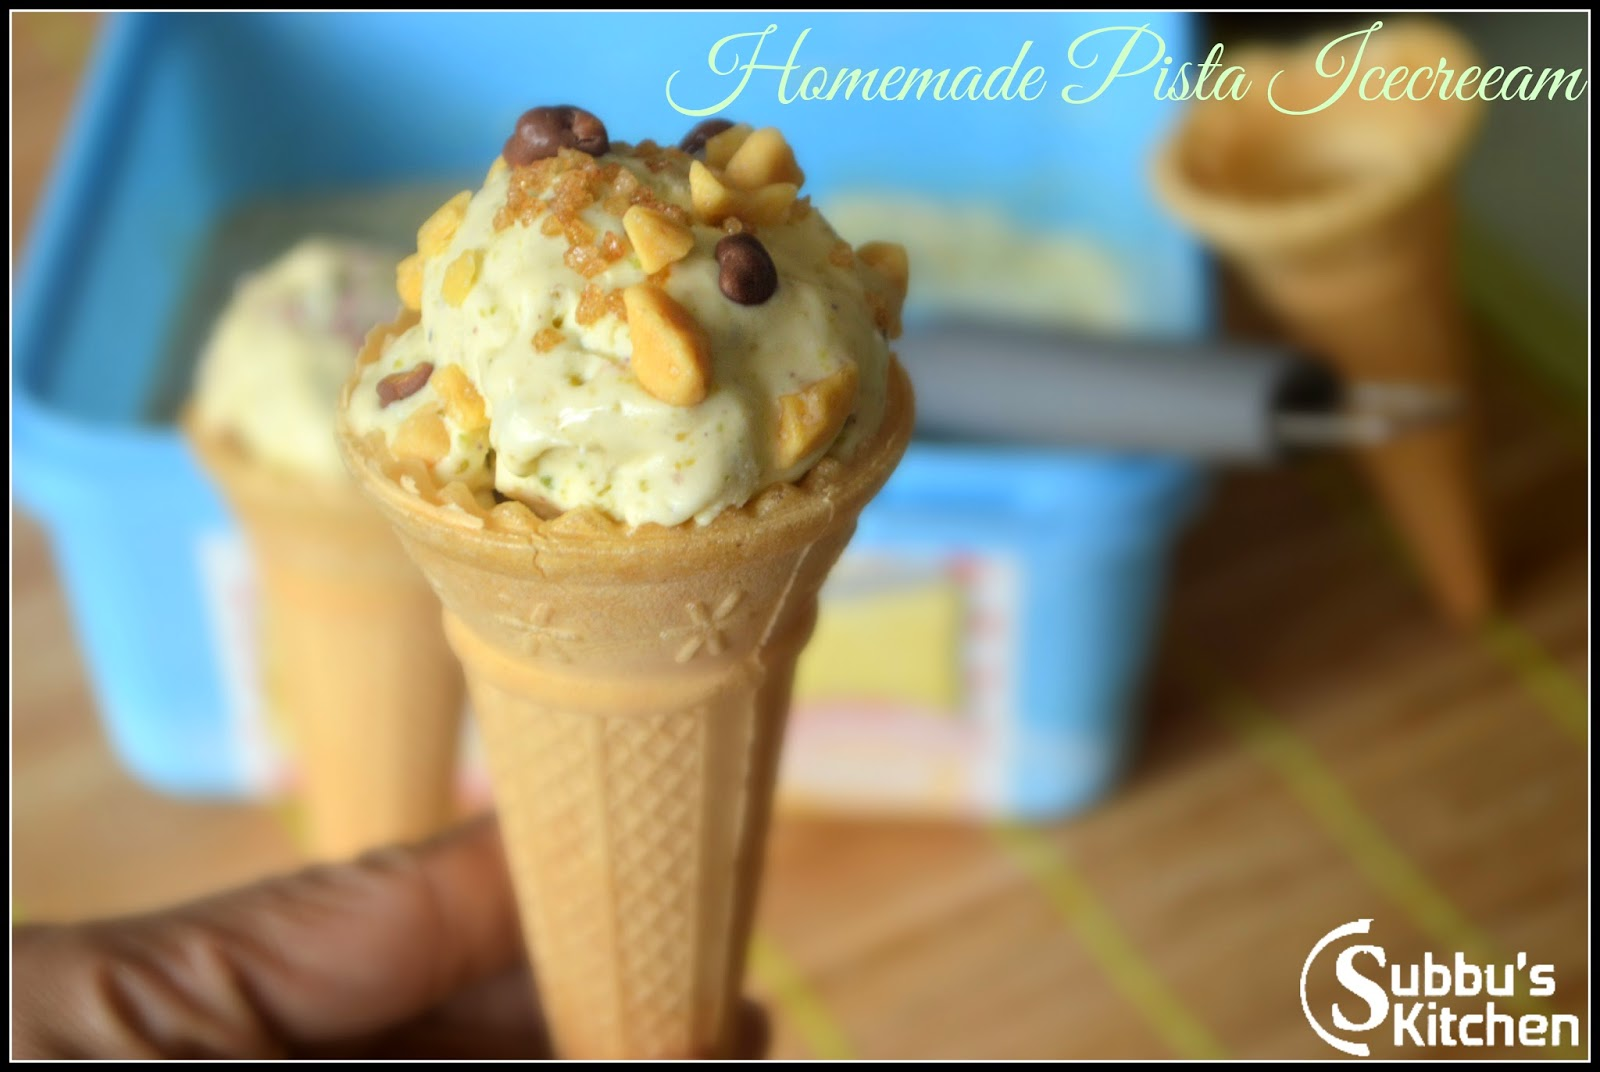 Homemade Pista Icecream